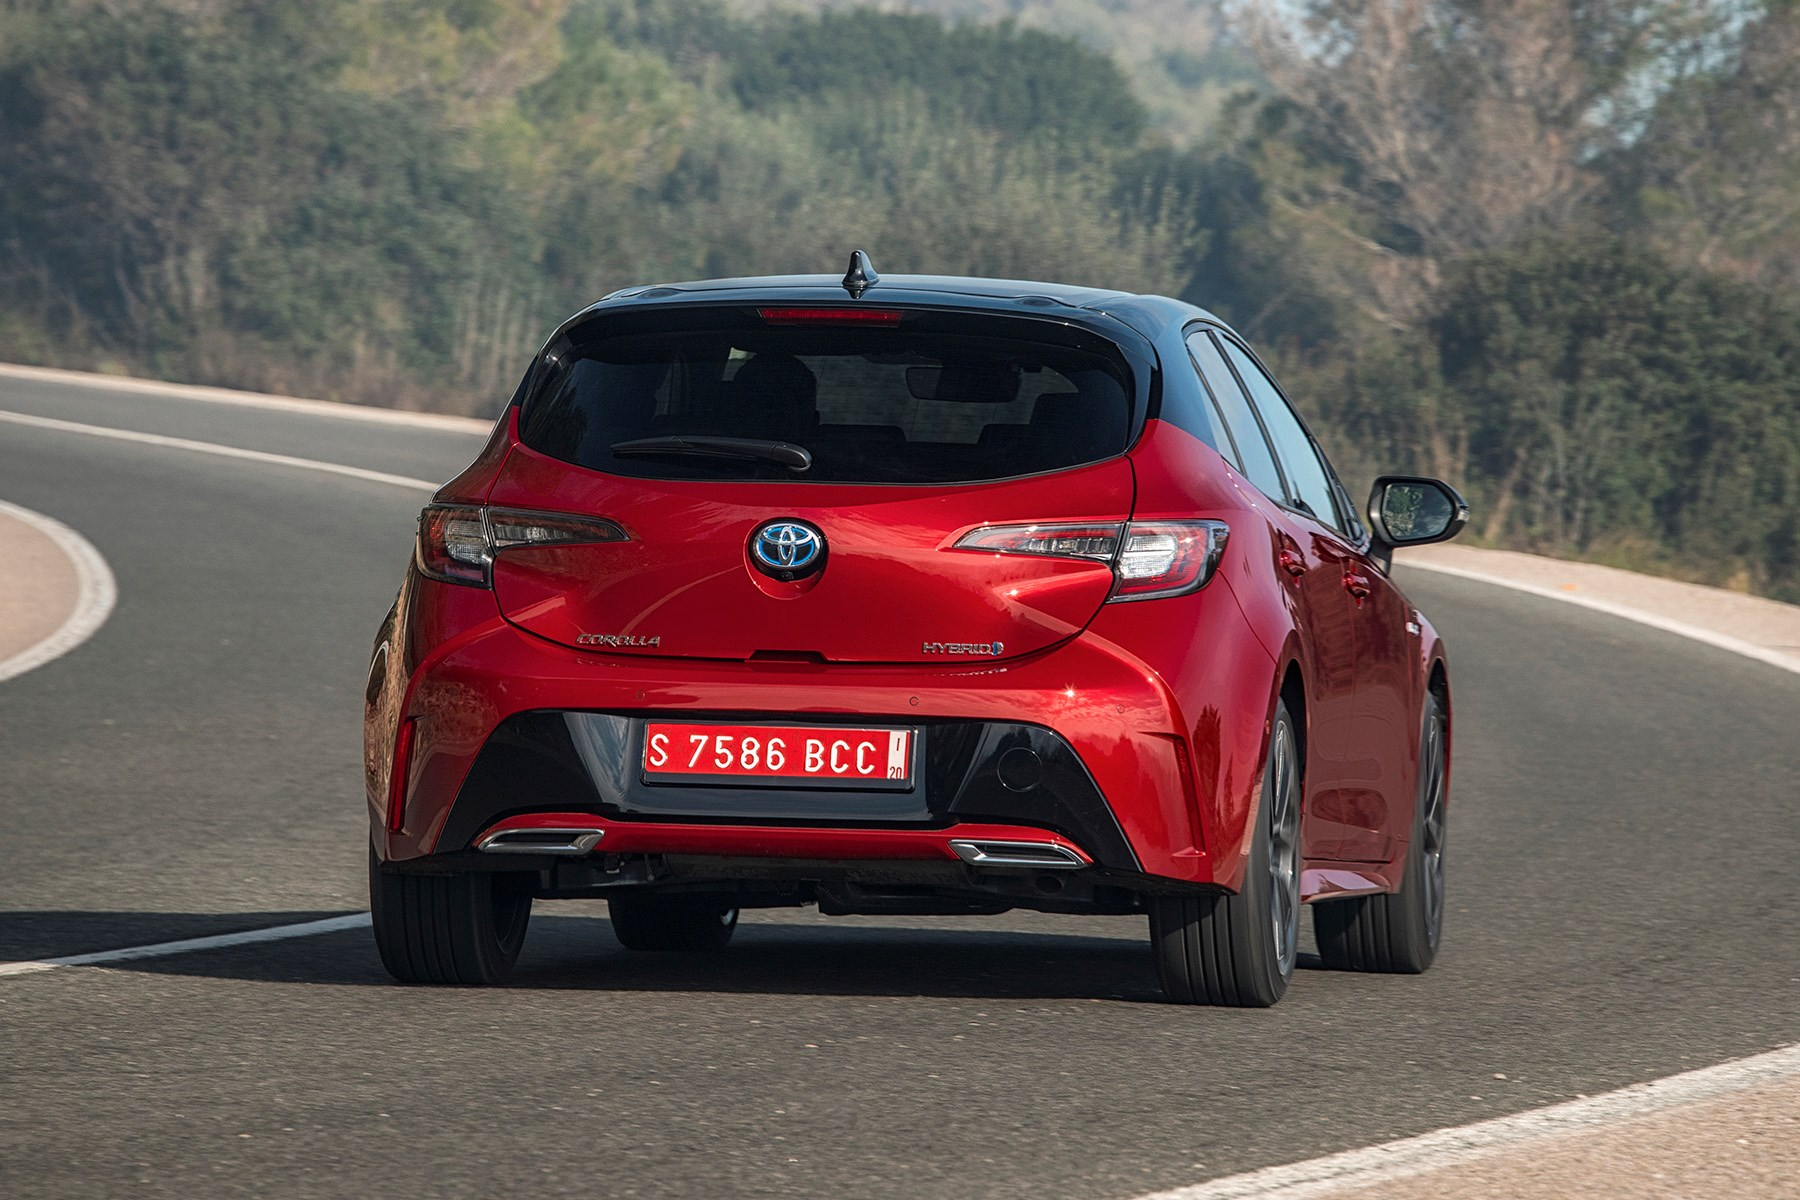 Find Some Corners And The New 2019 Toyota Corolla Far From Disgraces Itself Displaying A Decent Amount Of Front End Grip With Predictable Although Light